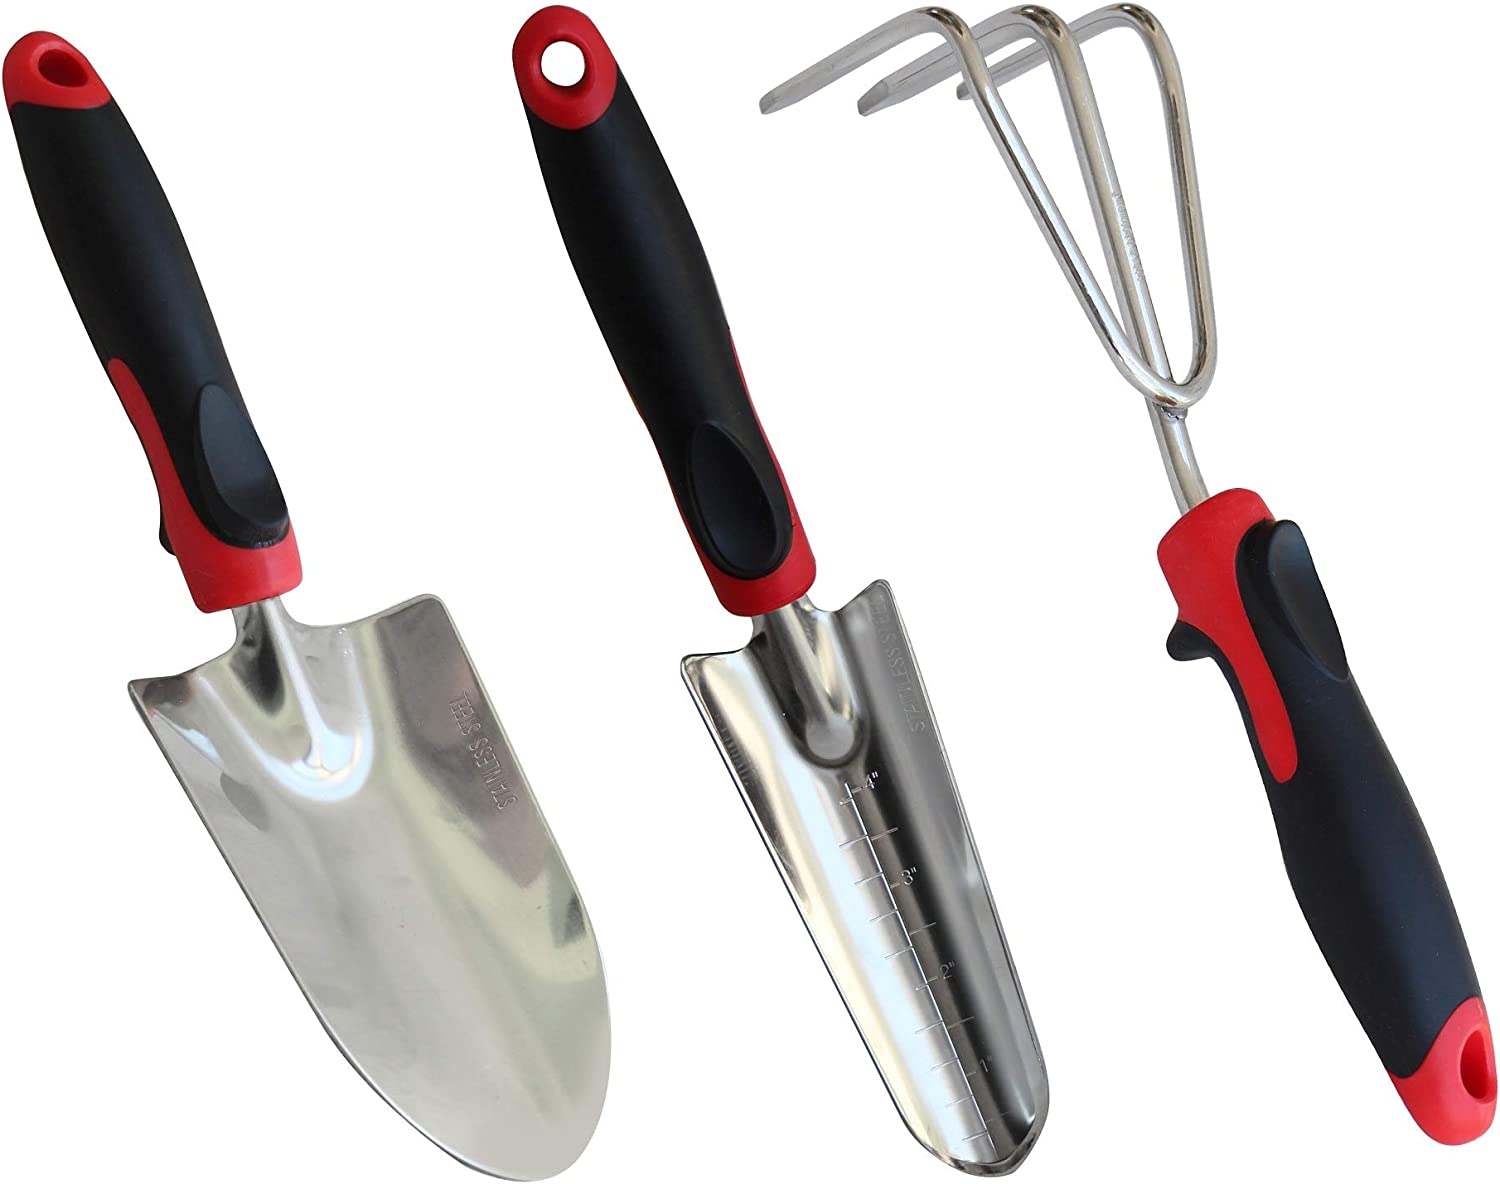 TABOR TOOLS D124A 3-Piece Garden Tool Set with Rubberized Non-Slip Handles, Stainless Steel, Includes Hand Trowel, Cultivator Hand Rake, and Transplanter with Gradation Marks